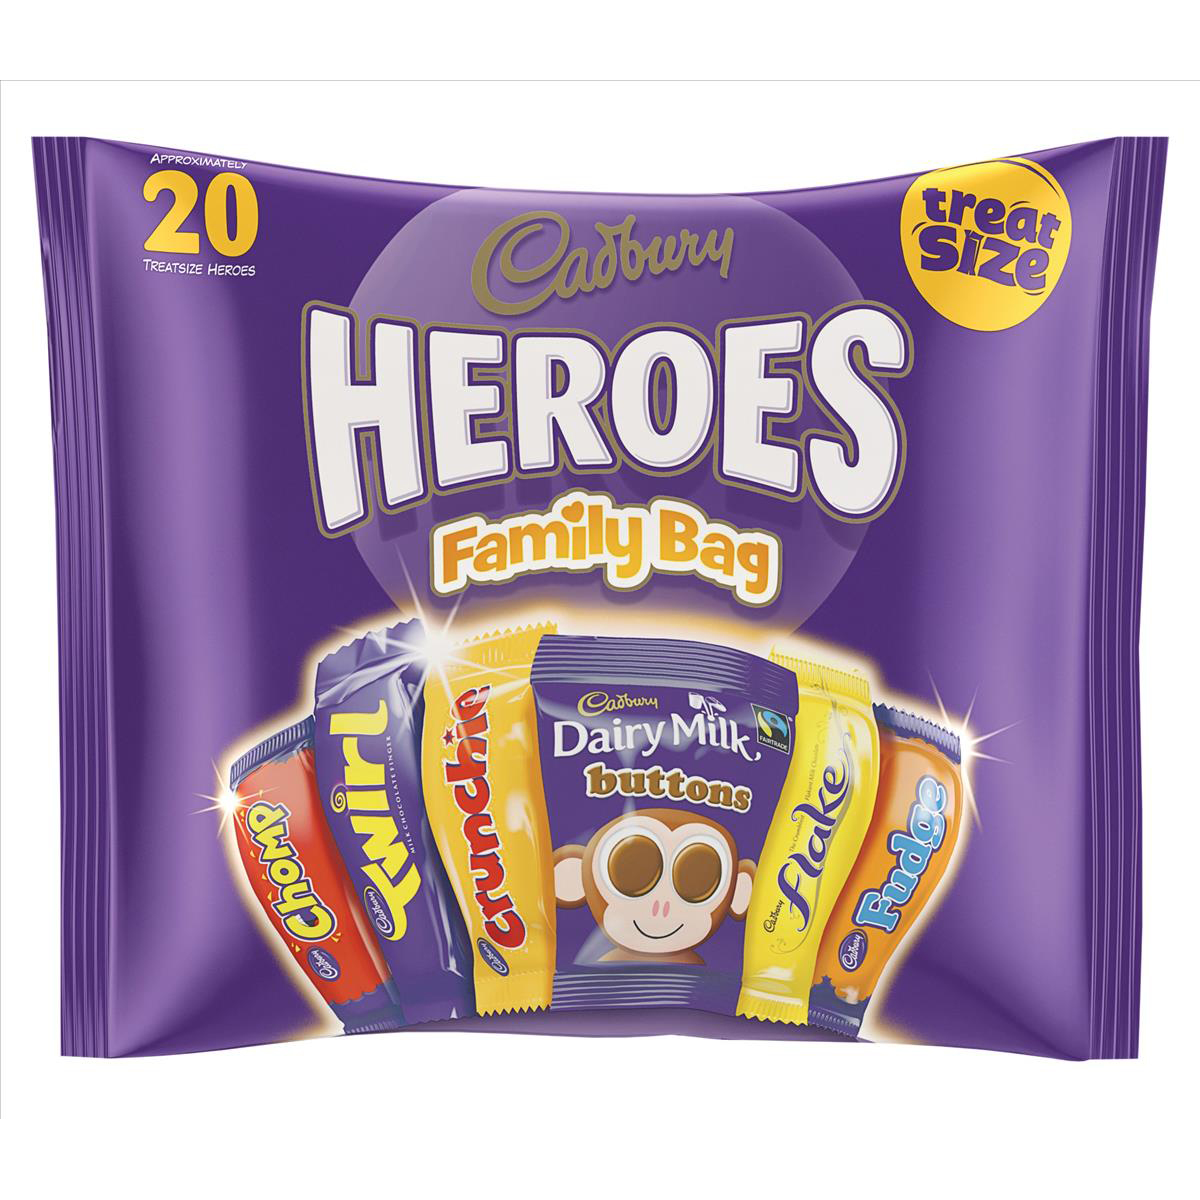 Sweets / Chocolate Cadbury Heroes Family Bag 20 Treatsize 278g Ref A03807